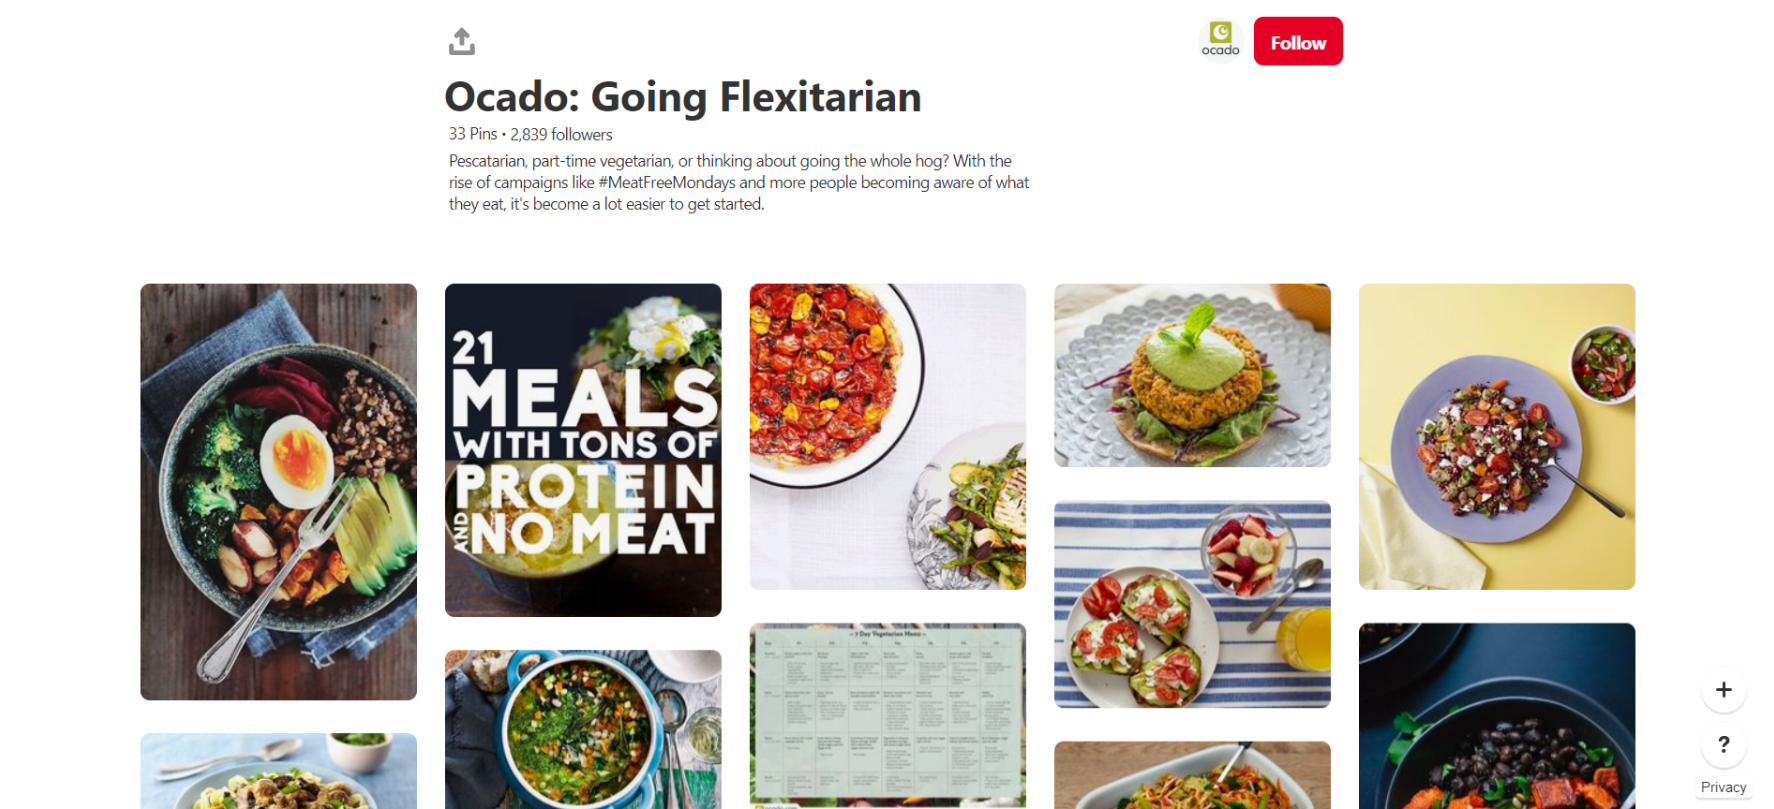 Ocado is one of the most beautiful food profiles on Pinterest